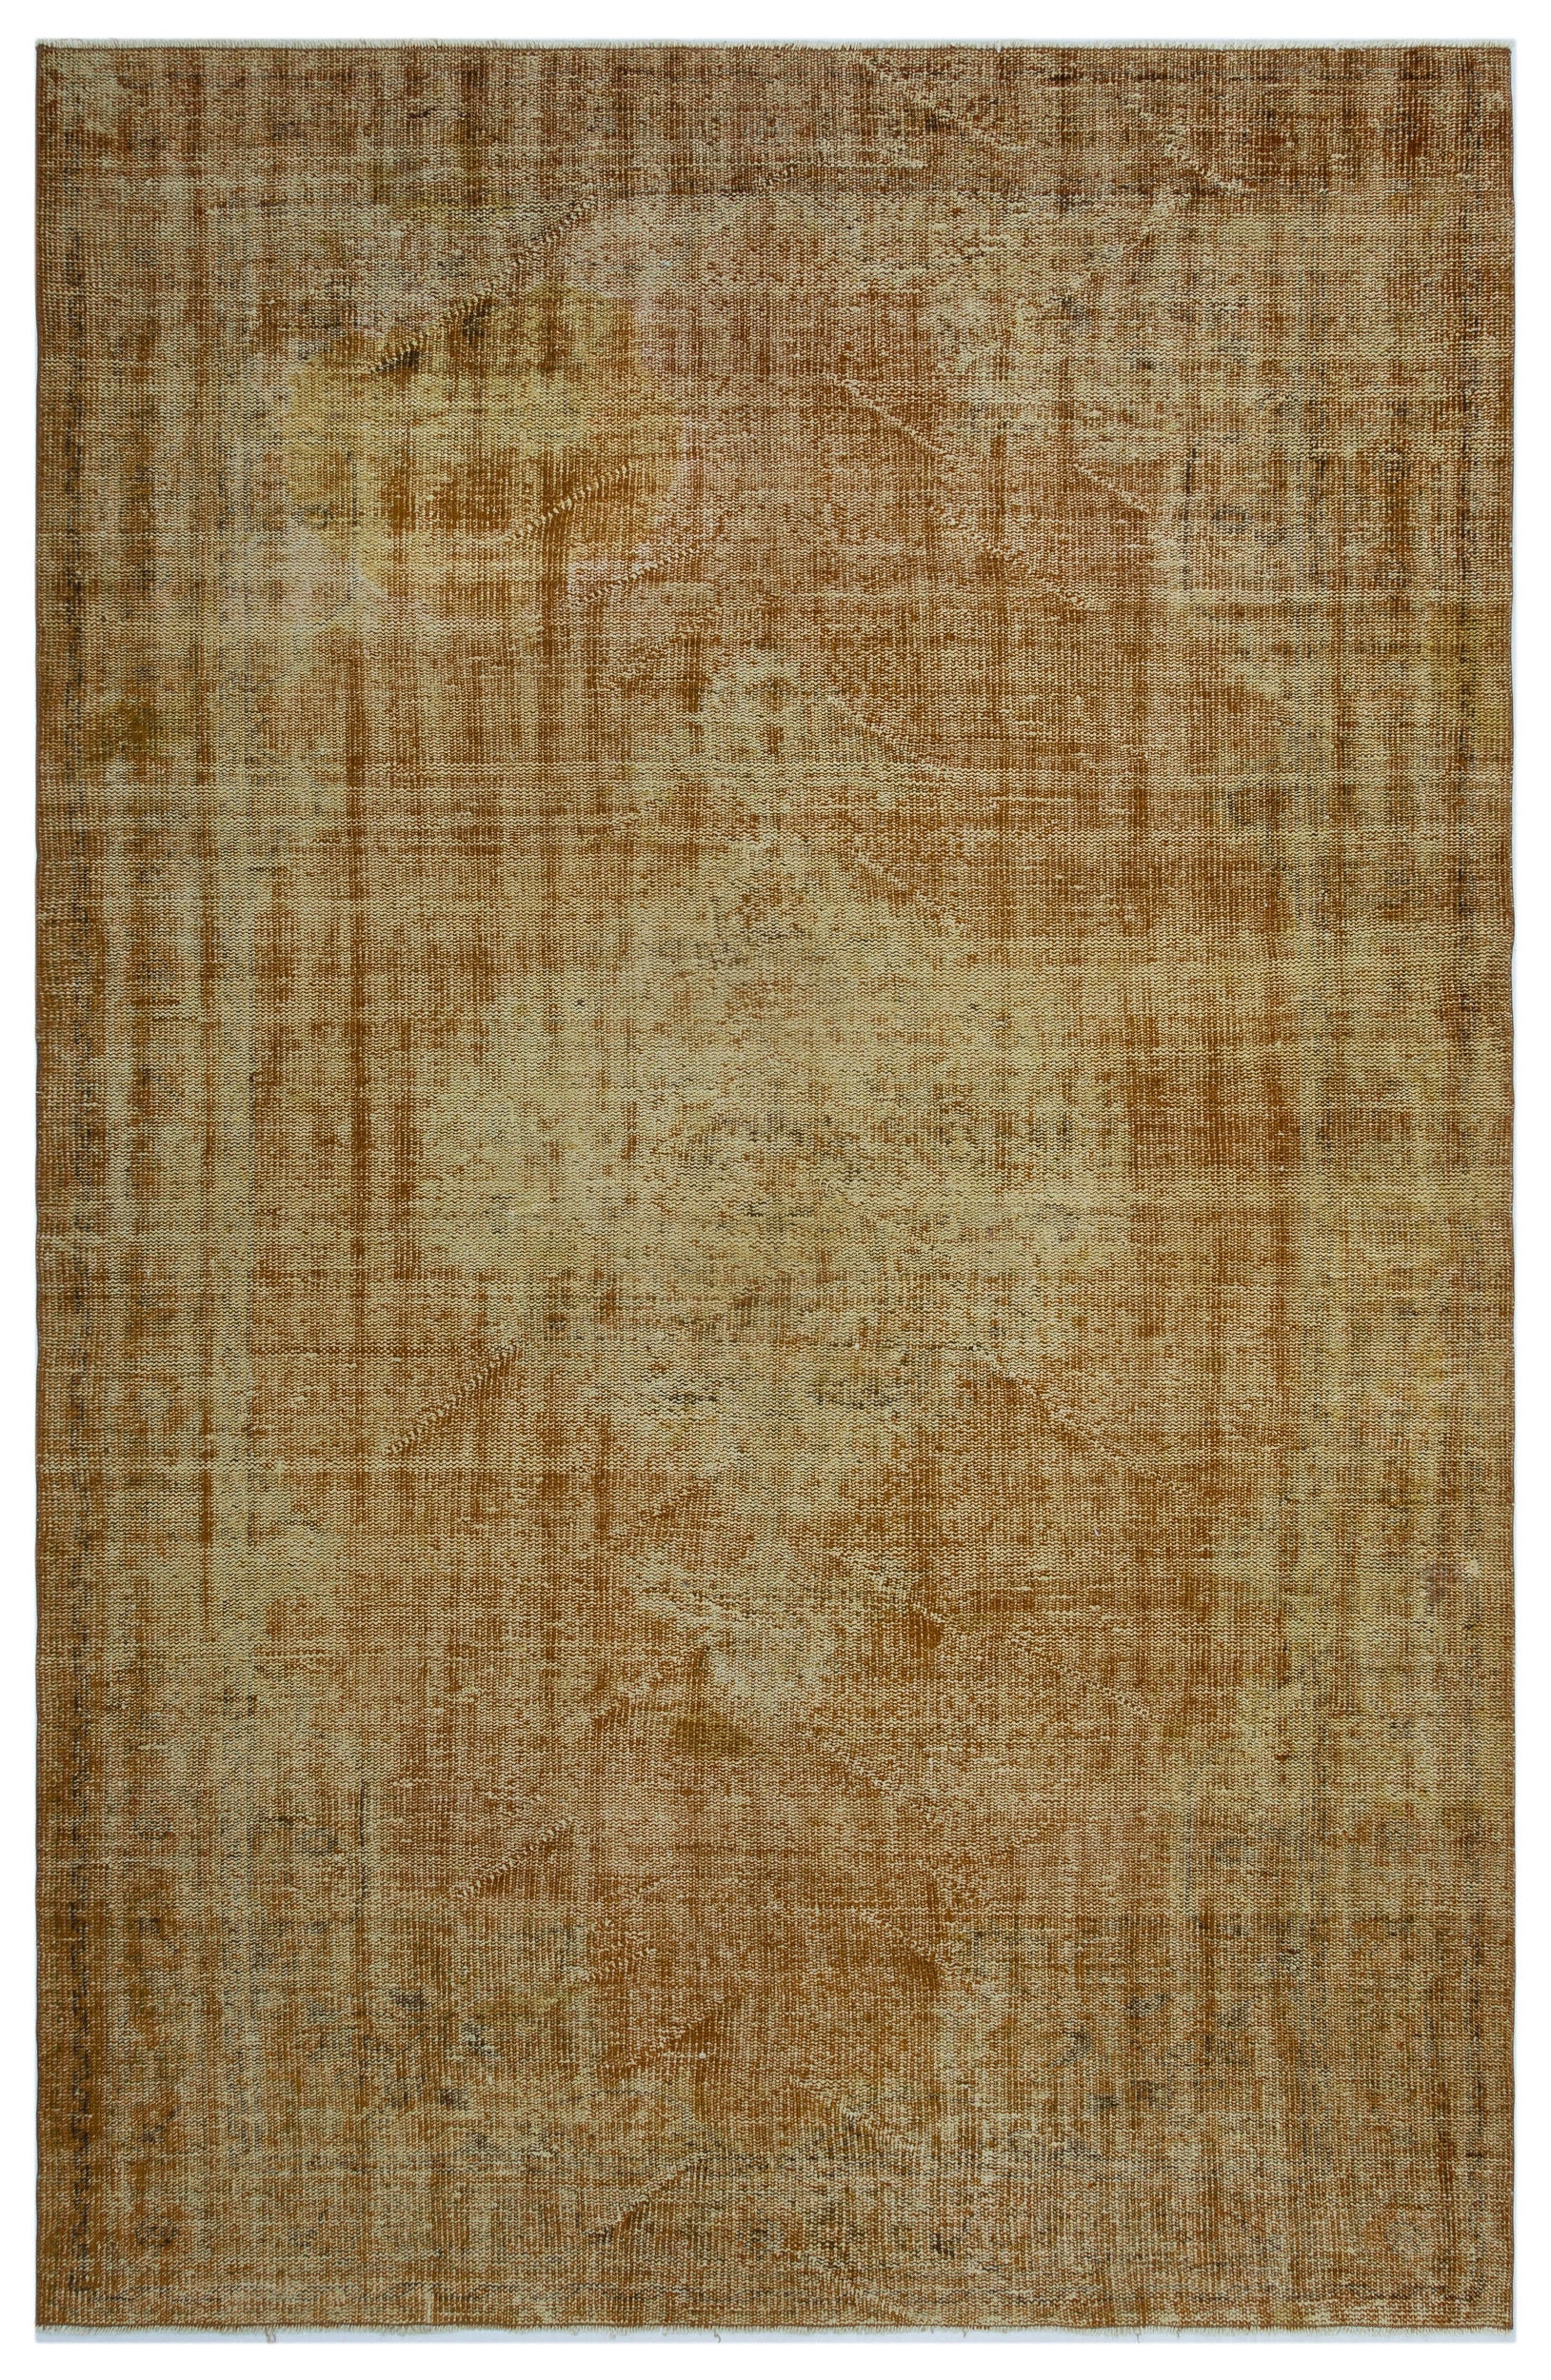 Brown Over Dyed Vintage Rug 6'2'' x 9'6'' ft 188 x 290 cm